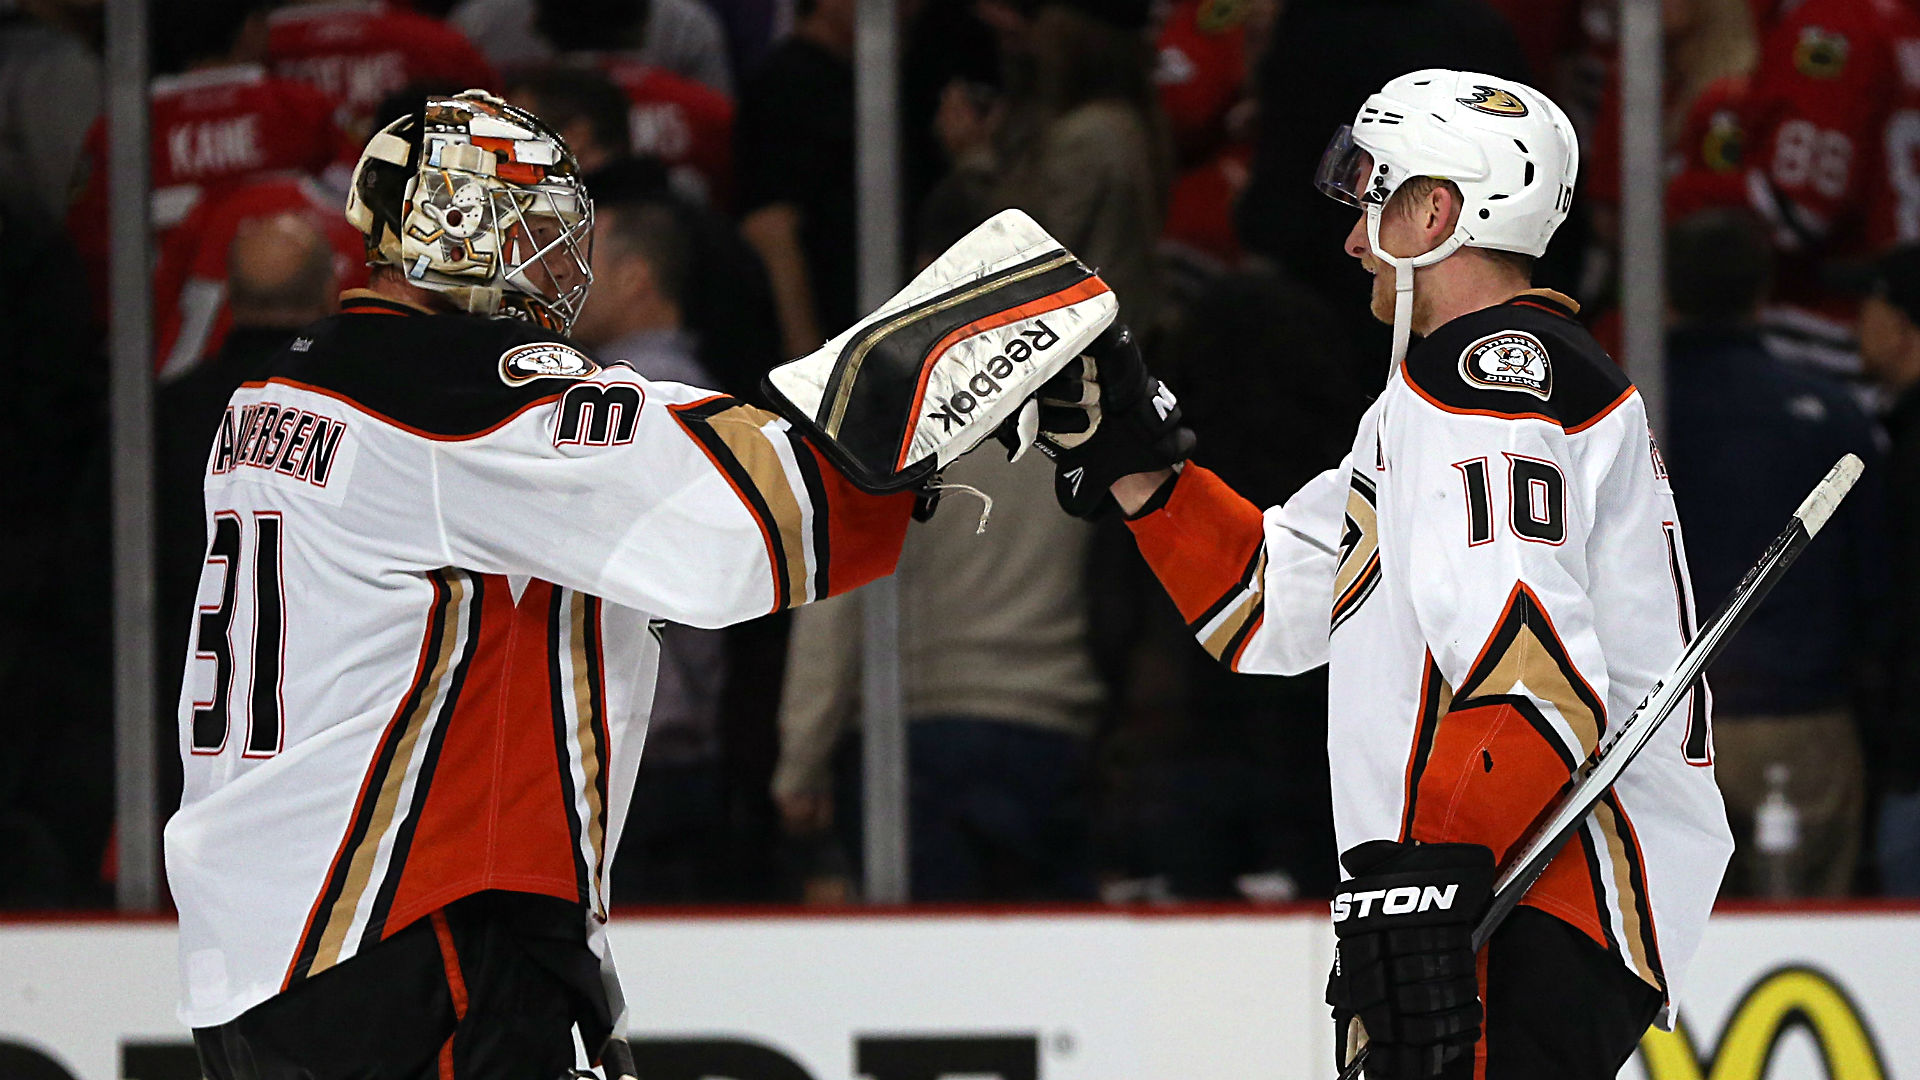 Ducks vs. Blackhawks Game 4 — Anaheim happy at a slower pace